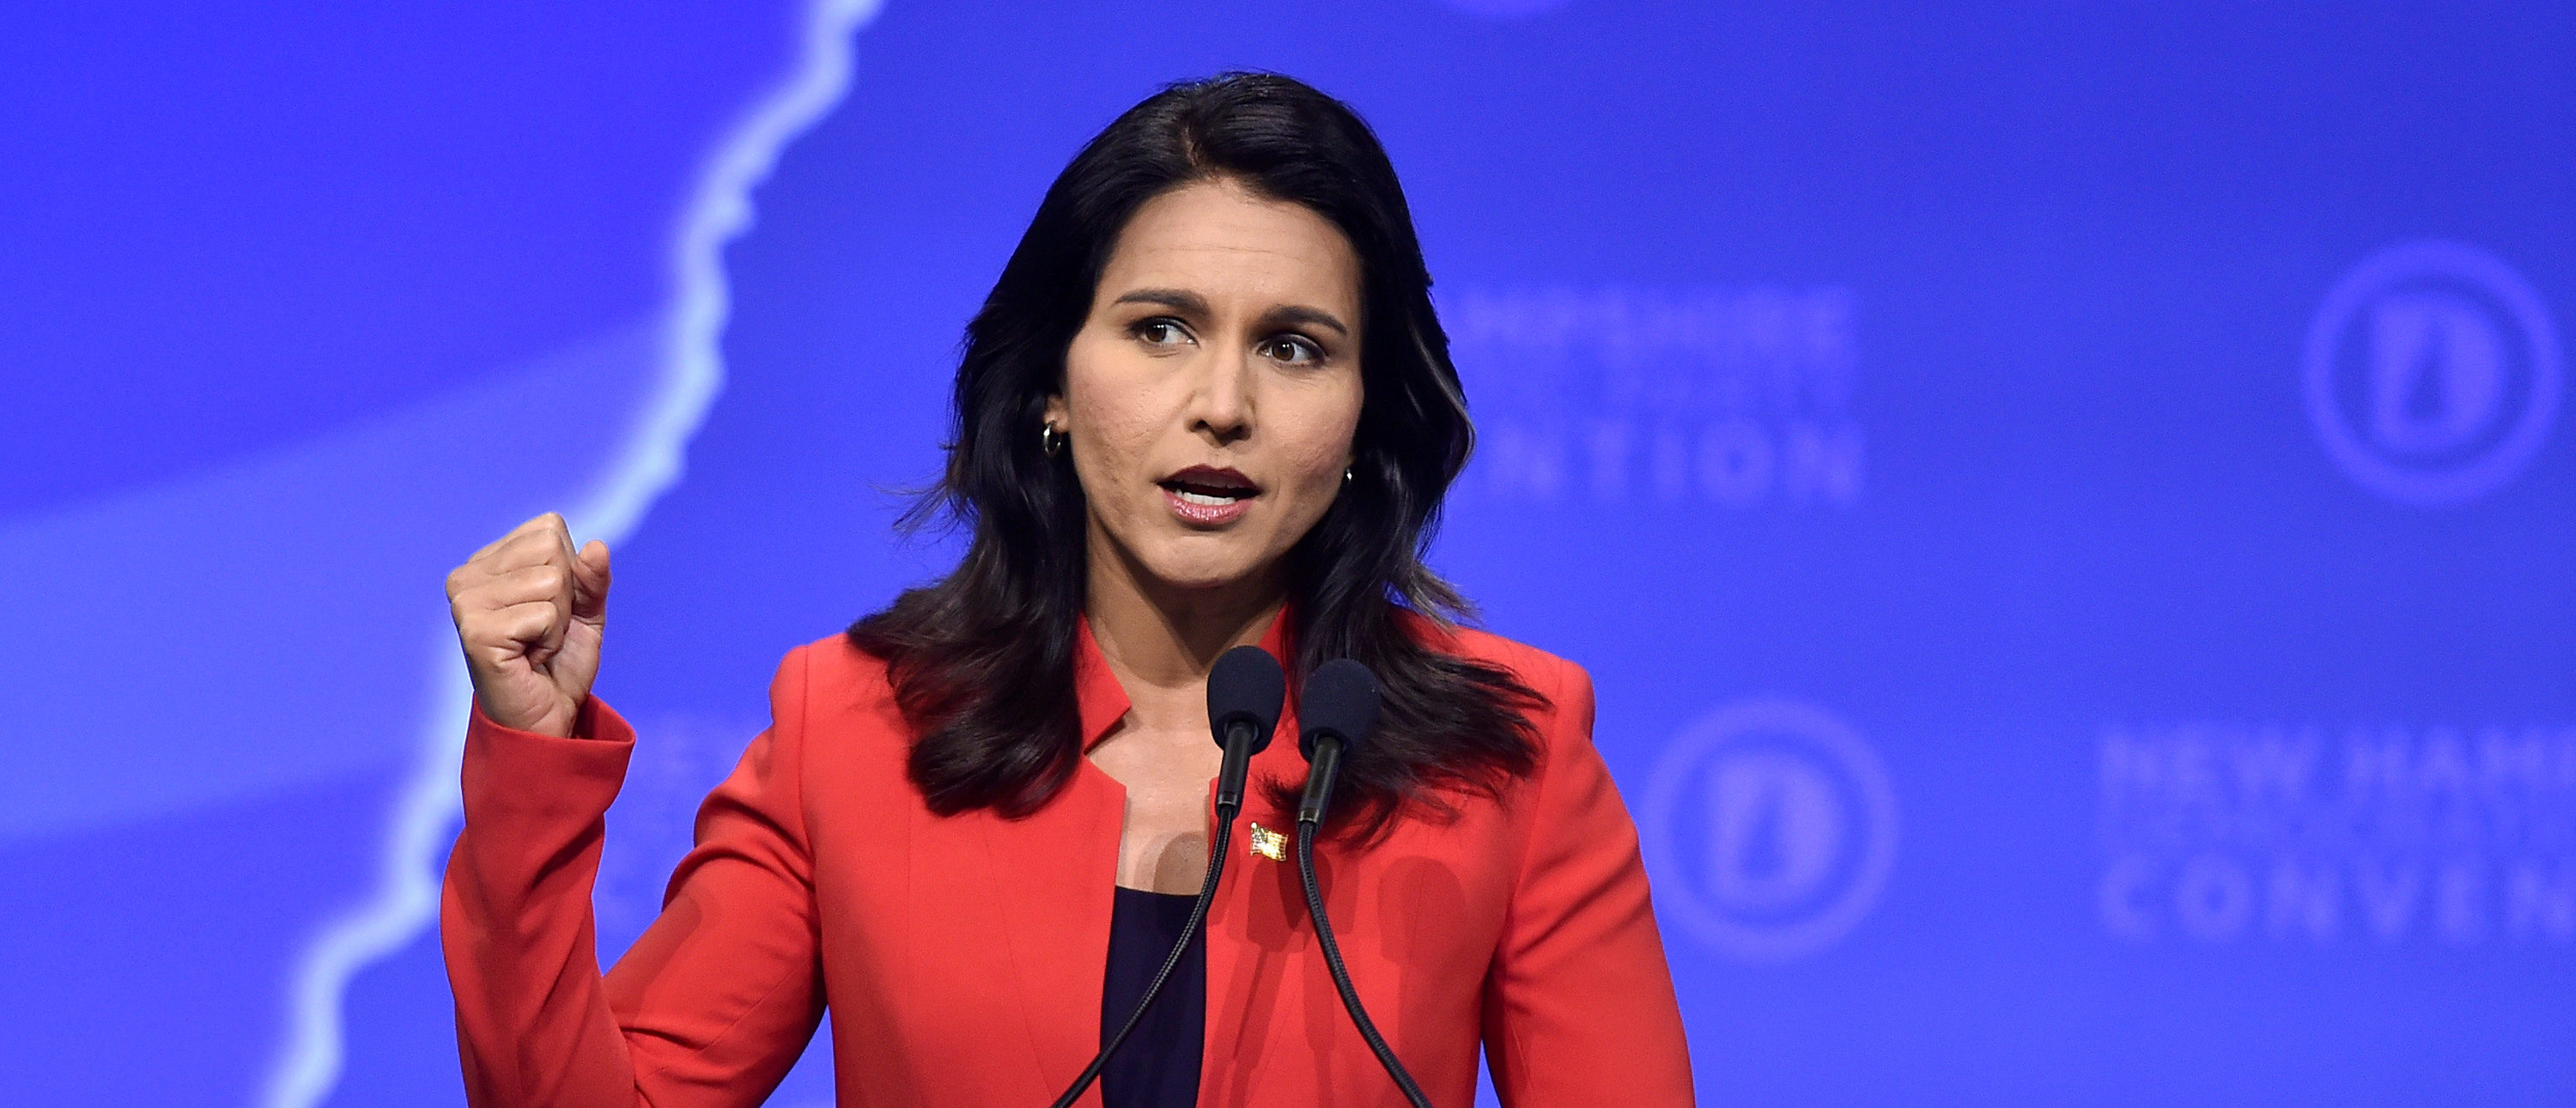 Gabbard Comes Out Against Open Borders, Supports Physical Barriers